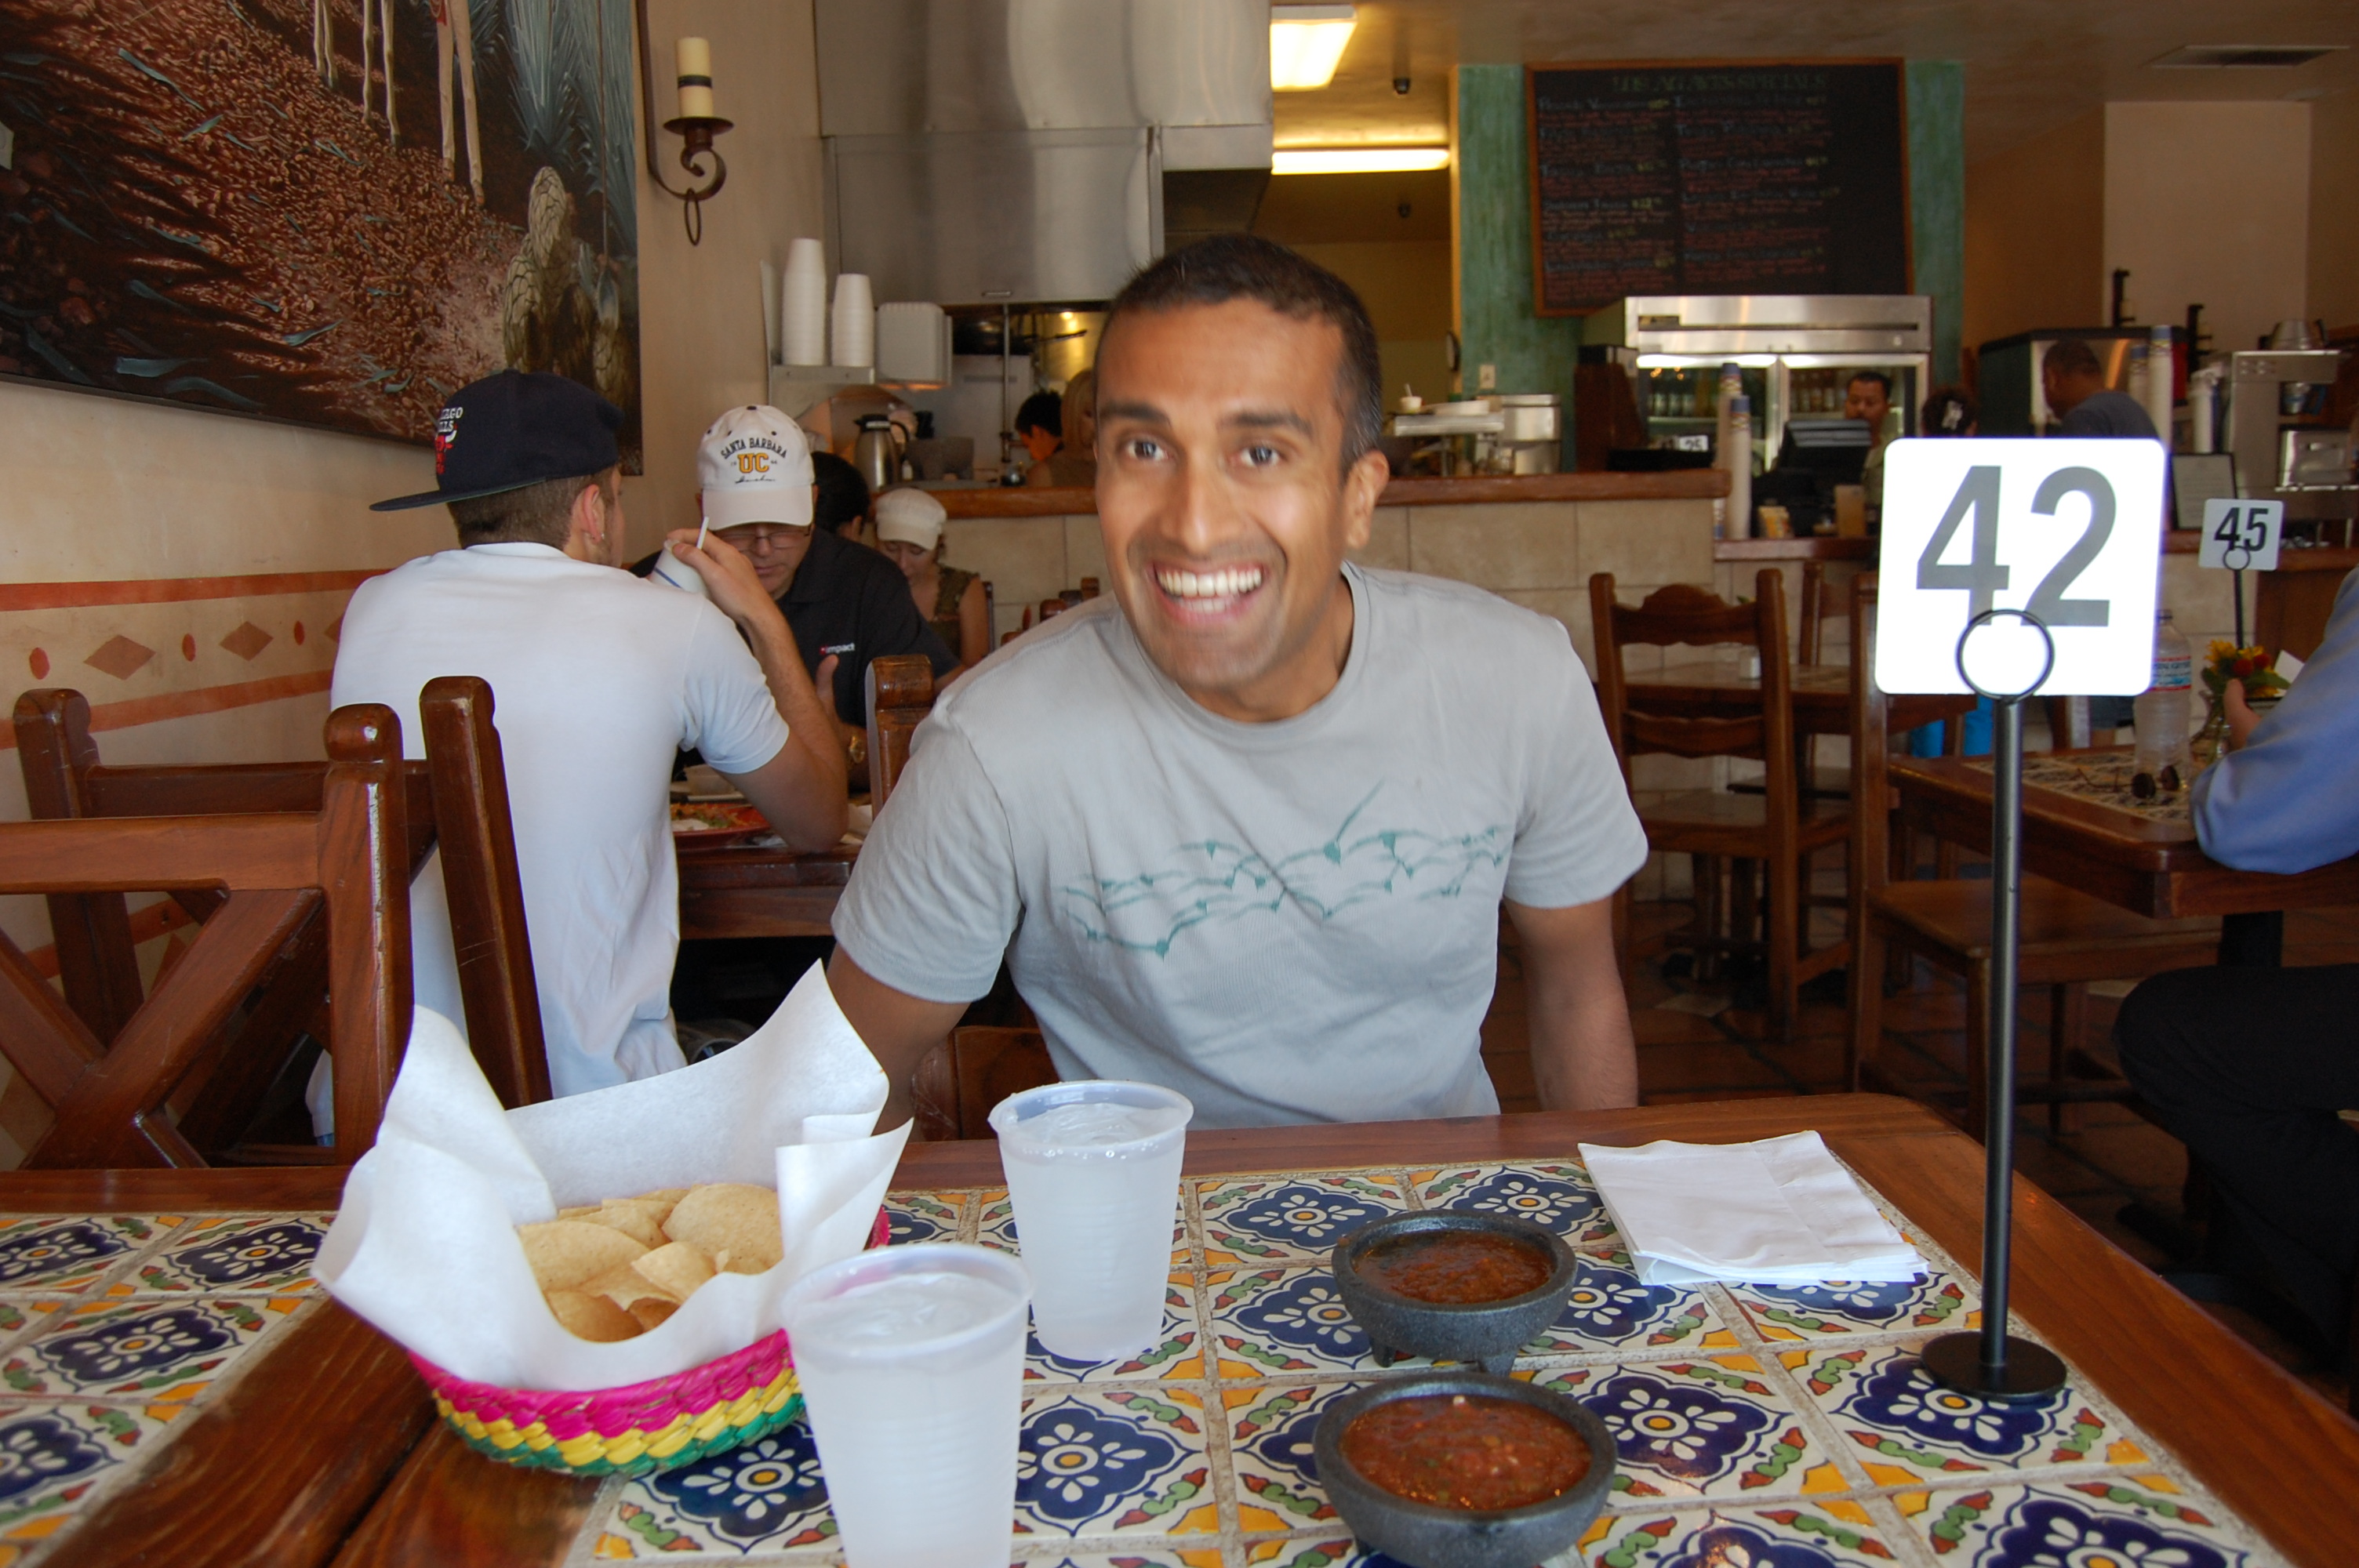 This was not our first time to Los Agaves, though. Look at us from these vintage photos 3 years ago, almost to the day. Soak in this youthful eagerness!